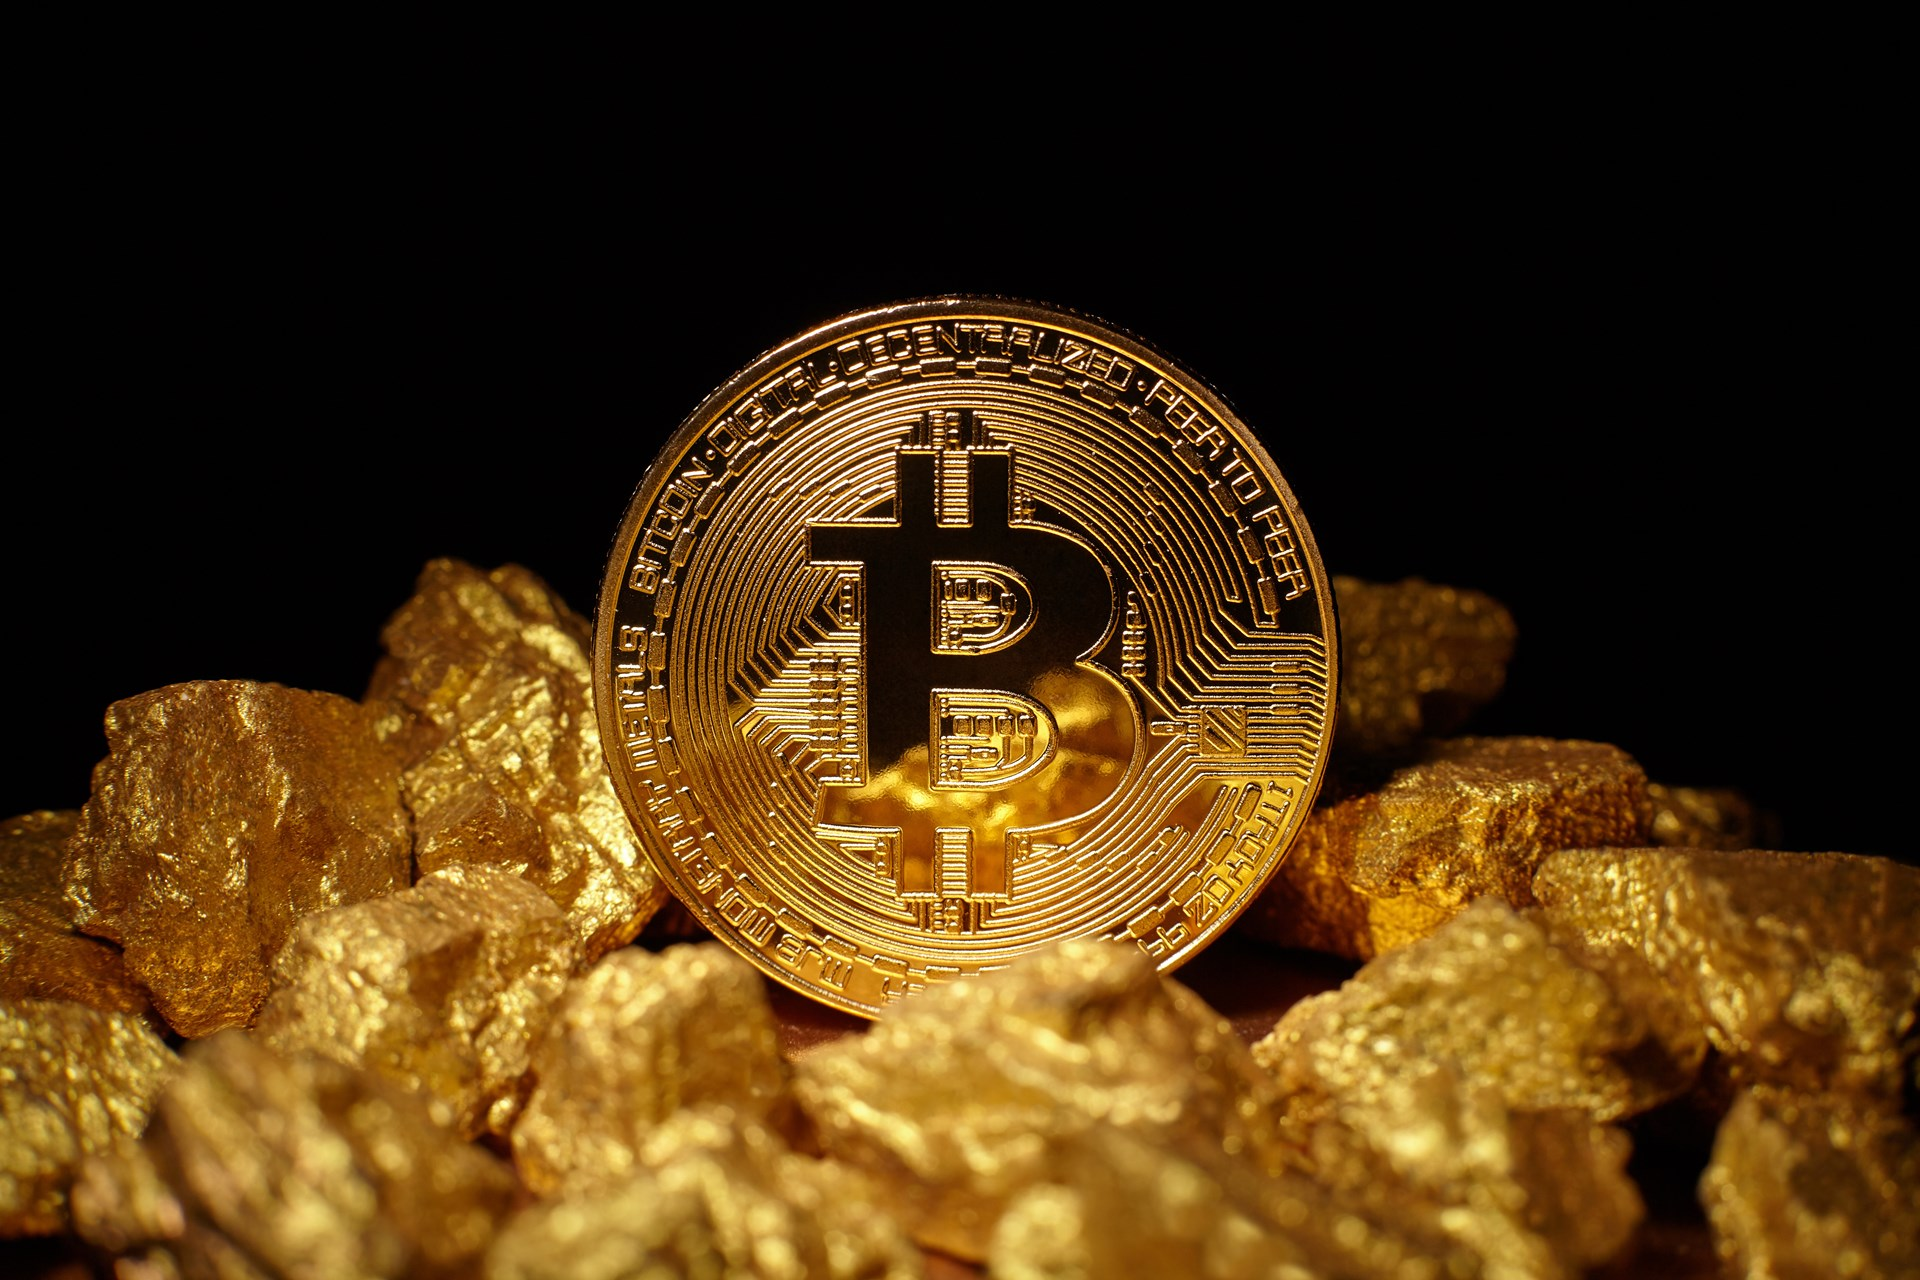 Combining bitcoin with gold foundation for economic education technology bitcoin blockchain cryptocurrency gold payments systems payments investment royal mint gold onegram ozcoingold digix glint dinarcoin goldmint ccuart Images